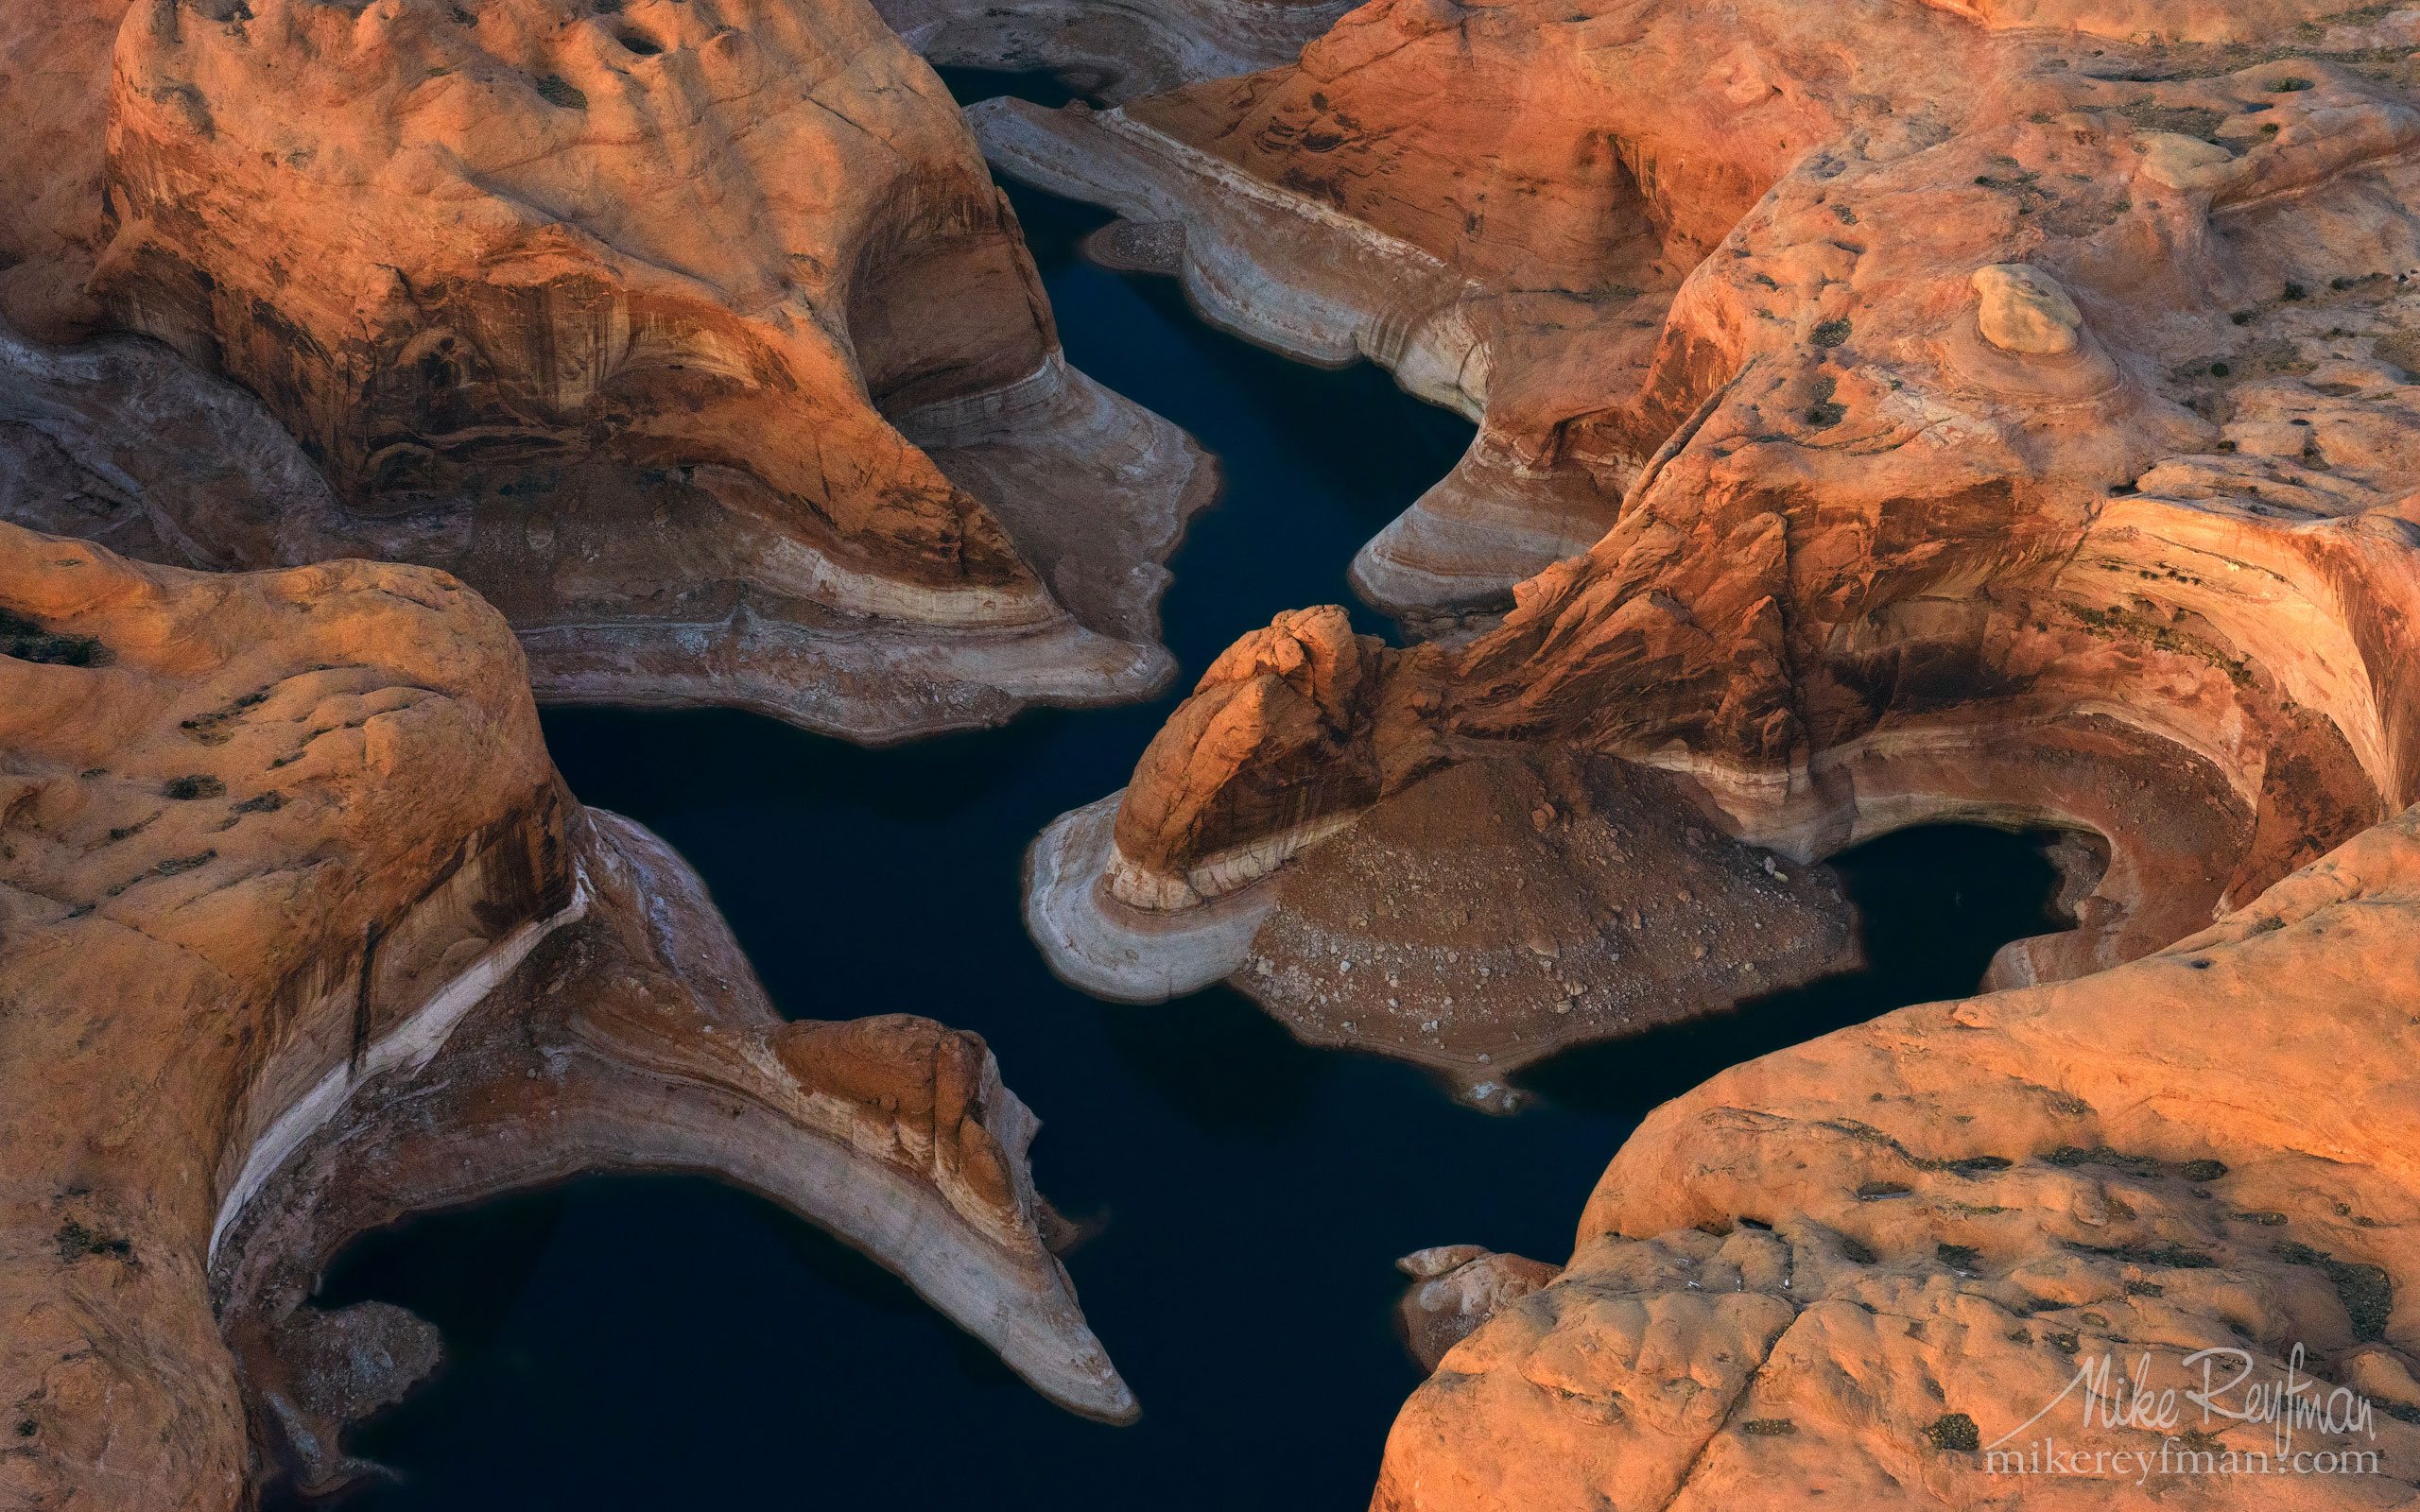 Reflection Canyon. Colorado River, Lake Powell, Glen Canyon NRA. Uta/Arizona, USA. Aerial 106-LP3_D8C9555.jpg - Lake Powell, Glen Canyon NAR. Colorado and Sun Juan Rivers. Utah/Arizona, USA  - Mike Reyfman Photography